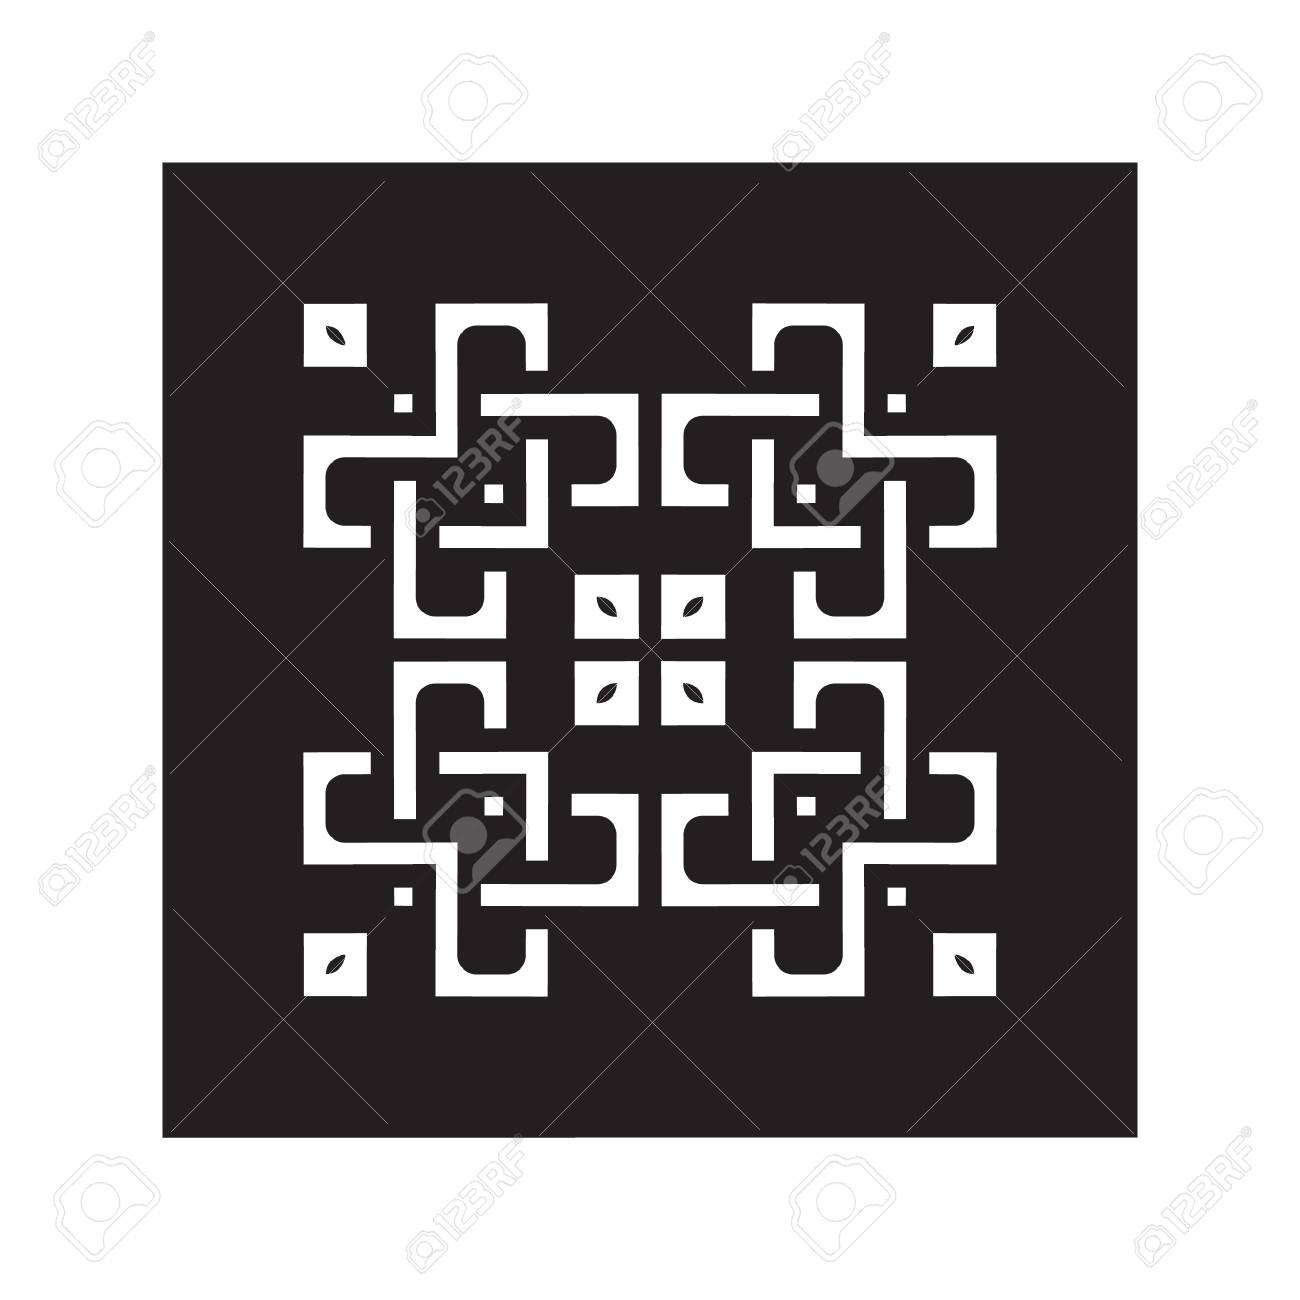 Lace Patterns Square Lattice Ornaments For Laser Cutting Or